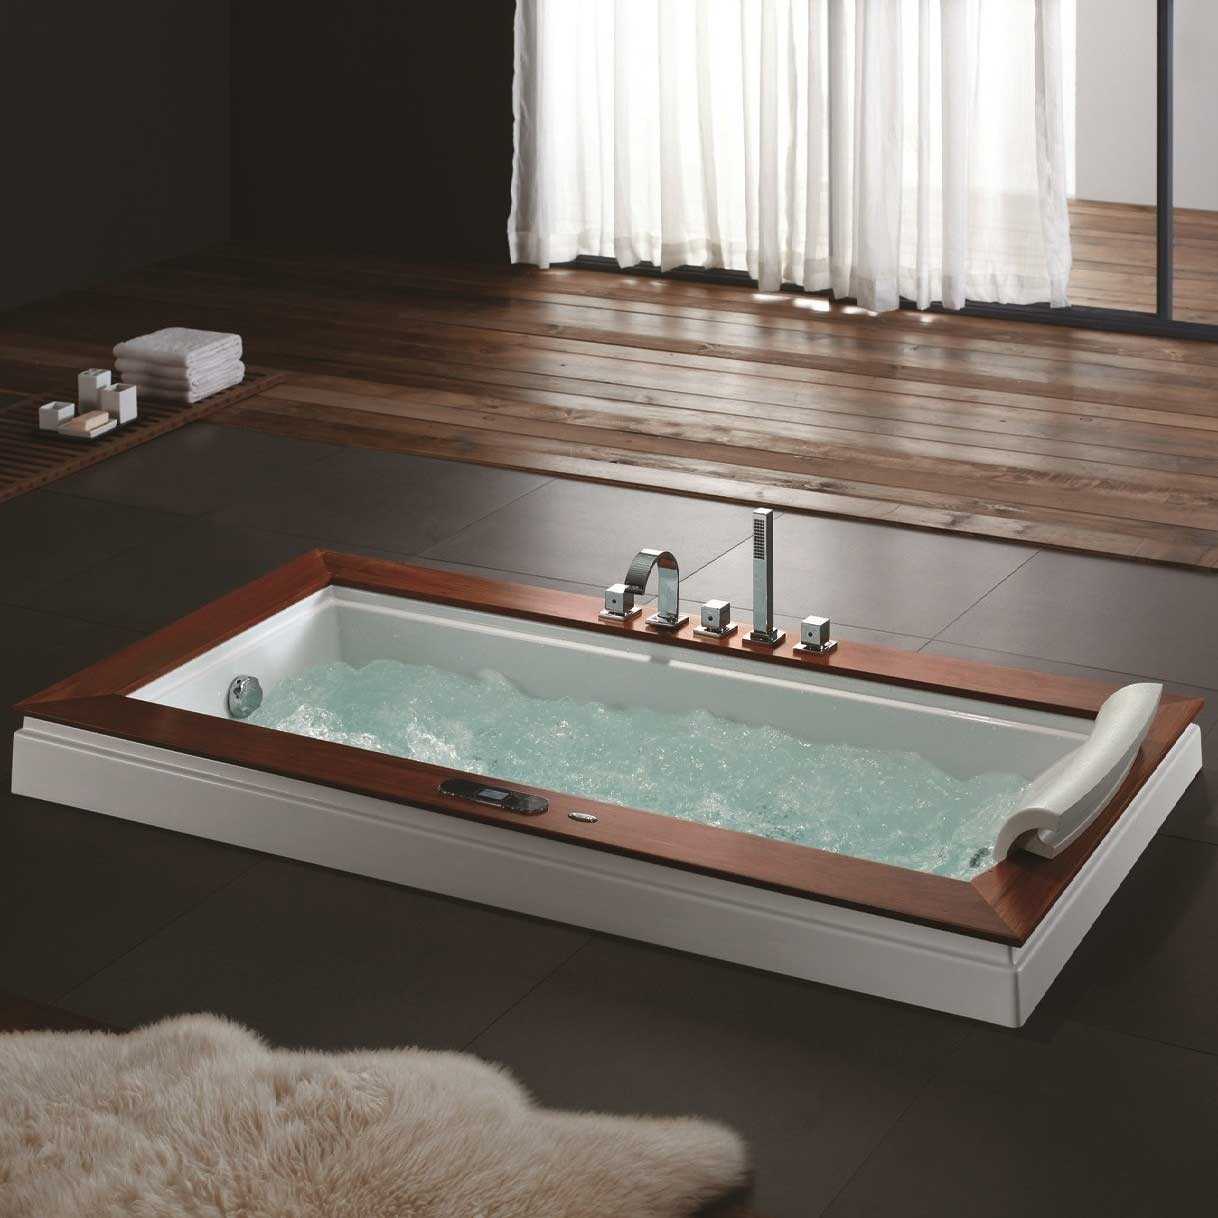 Santa Barbara Luxury Whirlpool Tub. Santa Barbara Whirlpool Tub